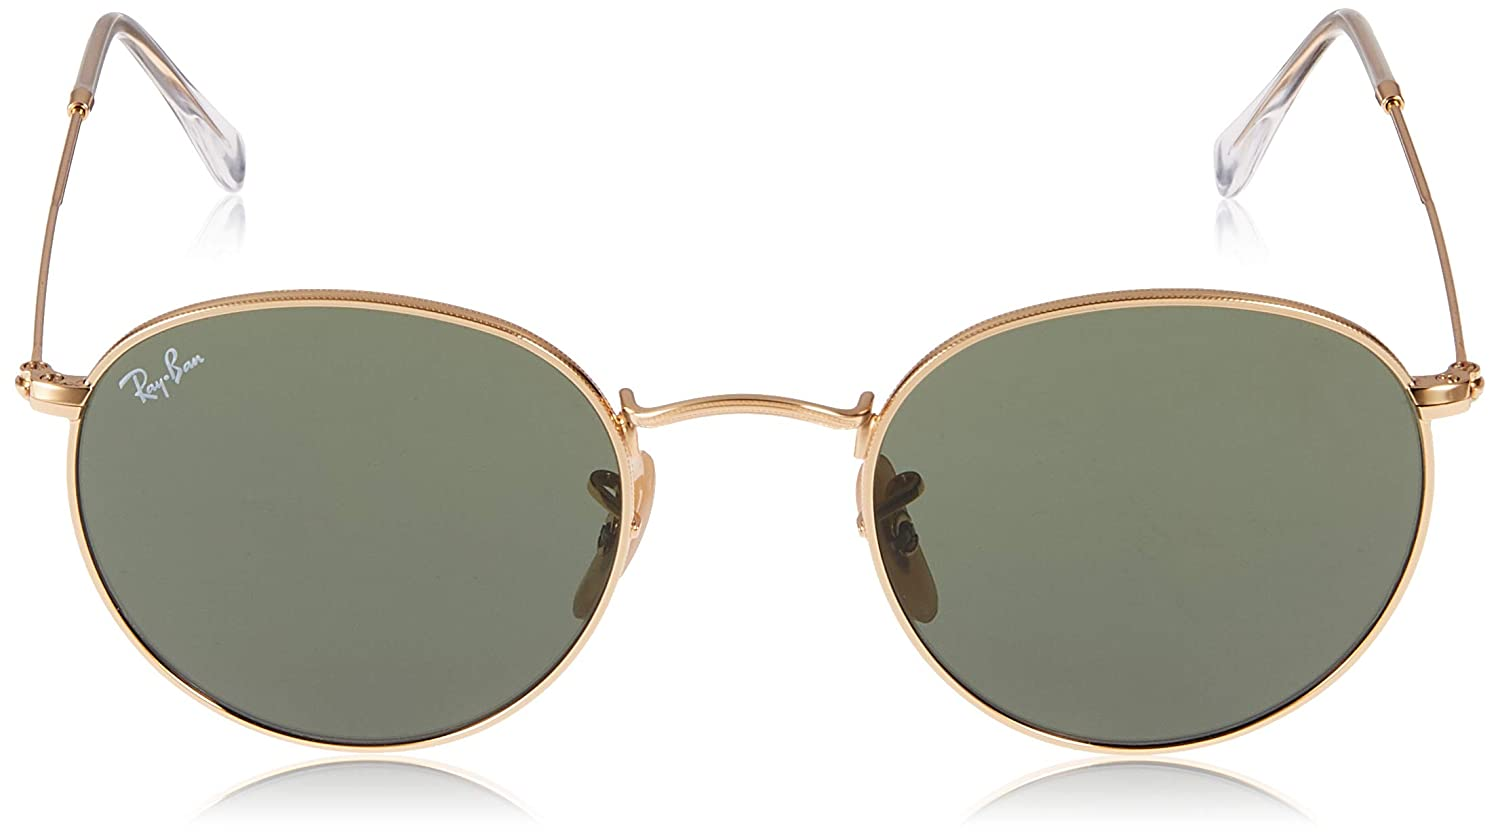 0f908947df Amazon.com  Ray-Ban ROUND METAL - ARISTA Frame CRYSTAL GREEN Lenses 47mm  Non-Polarized  Ray-Ban  Clothing